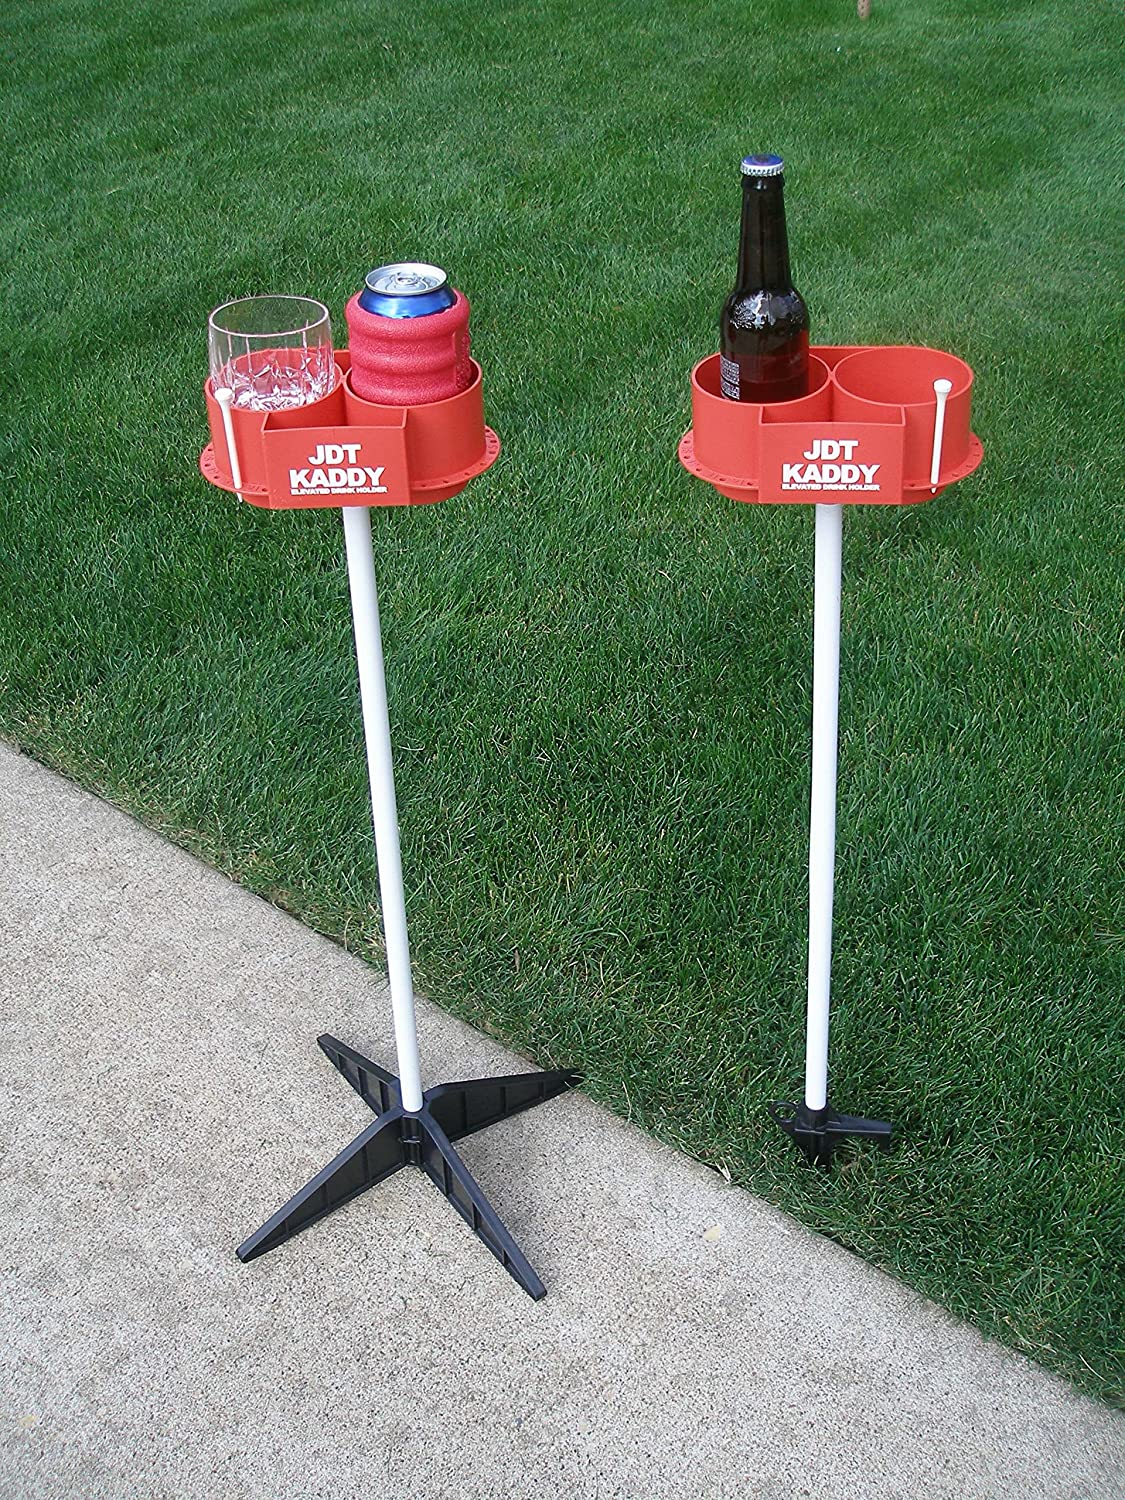 JDT Kaddy Elevated Drink Holders (Set of Two) RED/White - Comes with Both Ground Stakes and Hard Surface Stands. Great for Outdoor Games (RED/White)